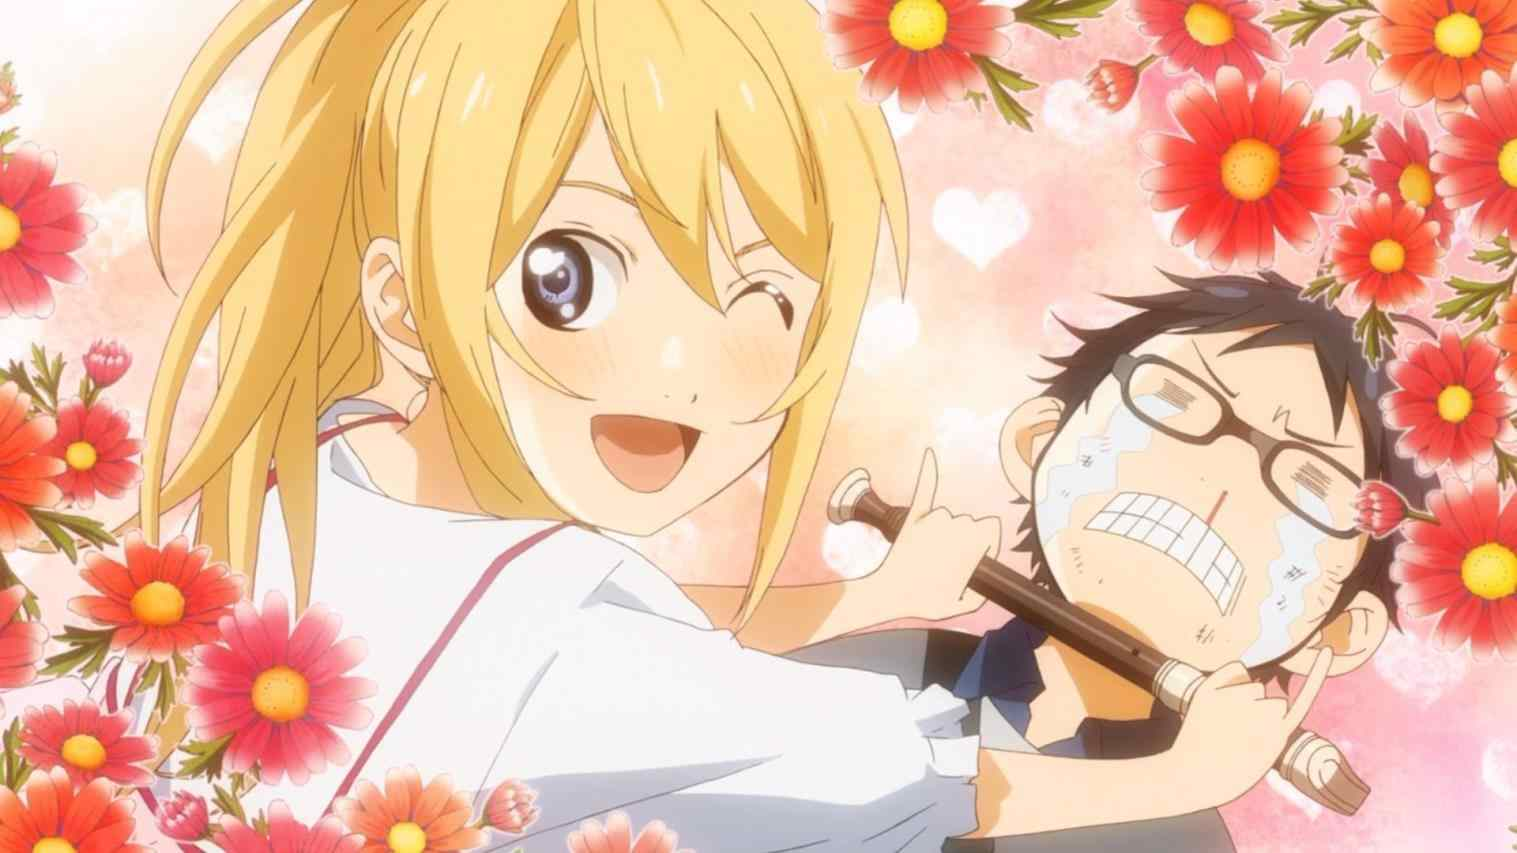 Wallpapers anime your lie in april funny kaori miyazono wallpapers i